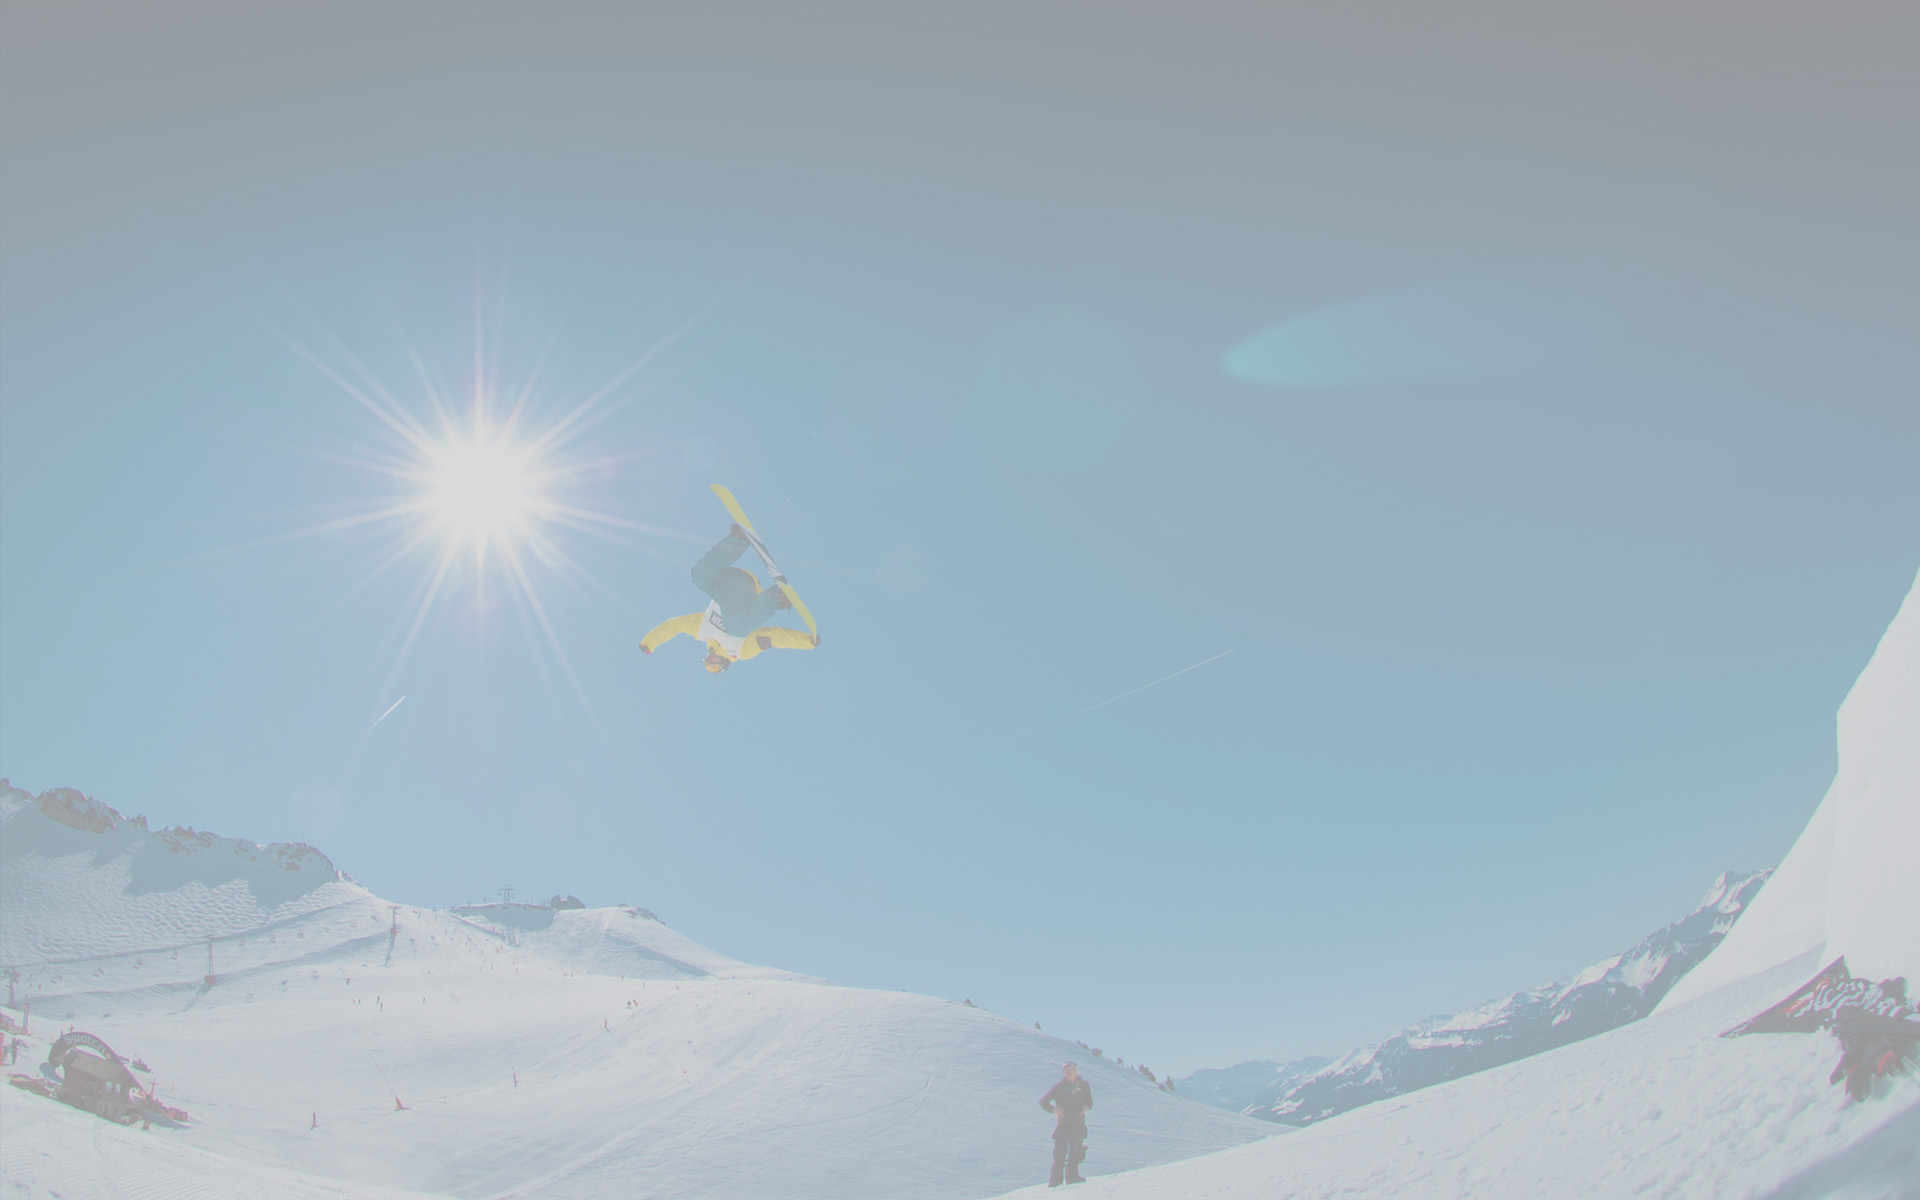 Snowboarder background for the skiing resort page